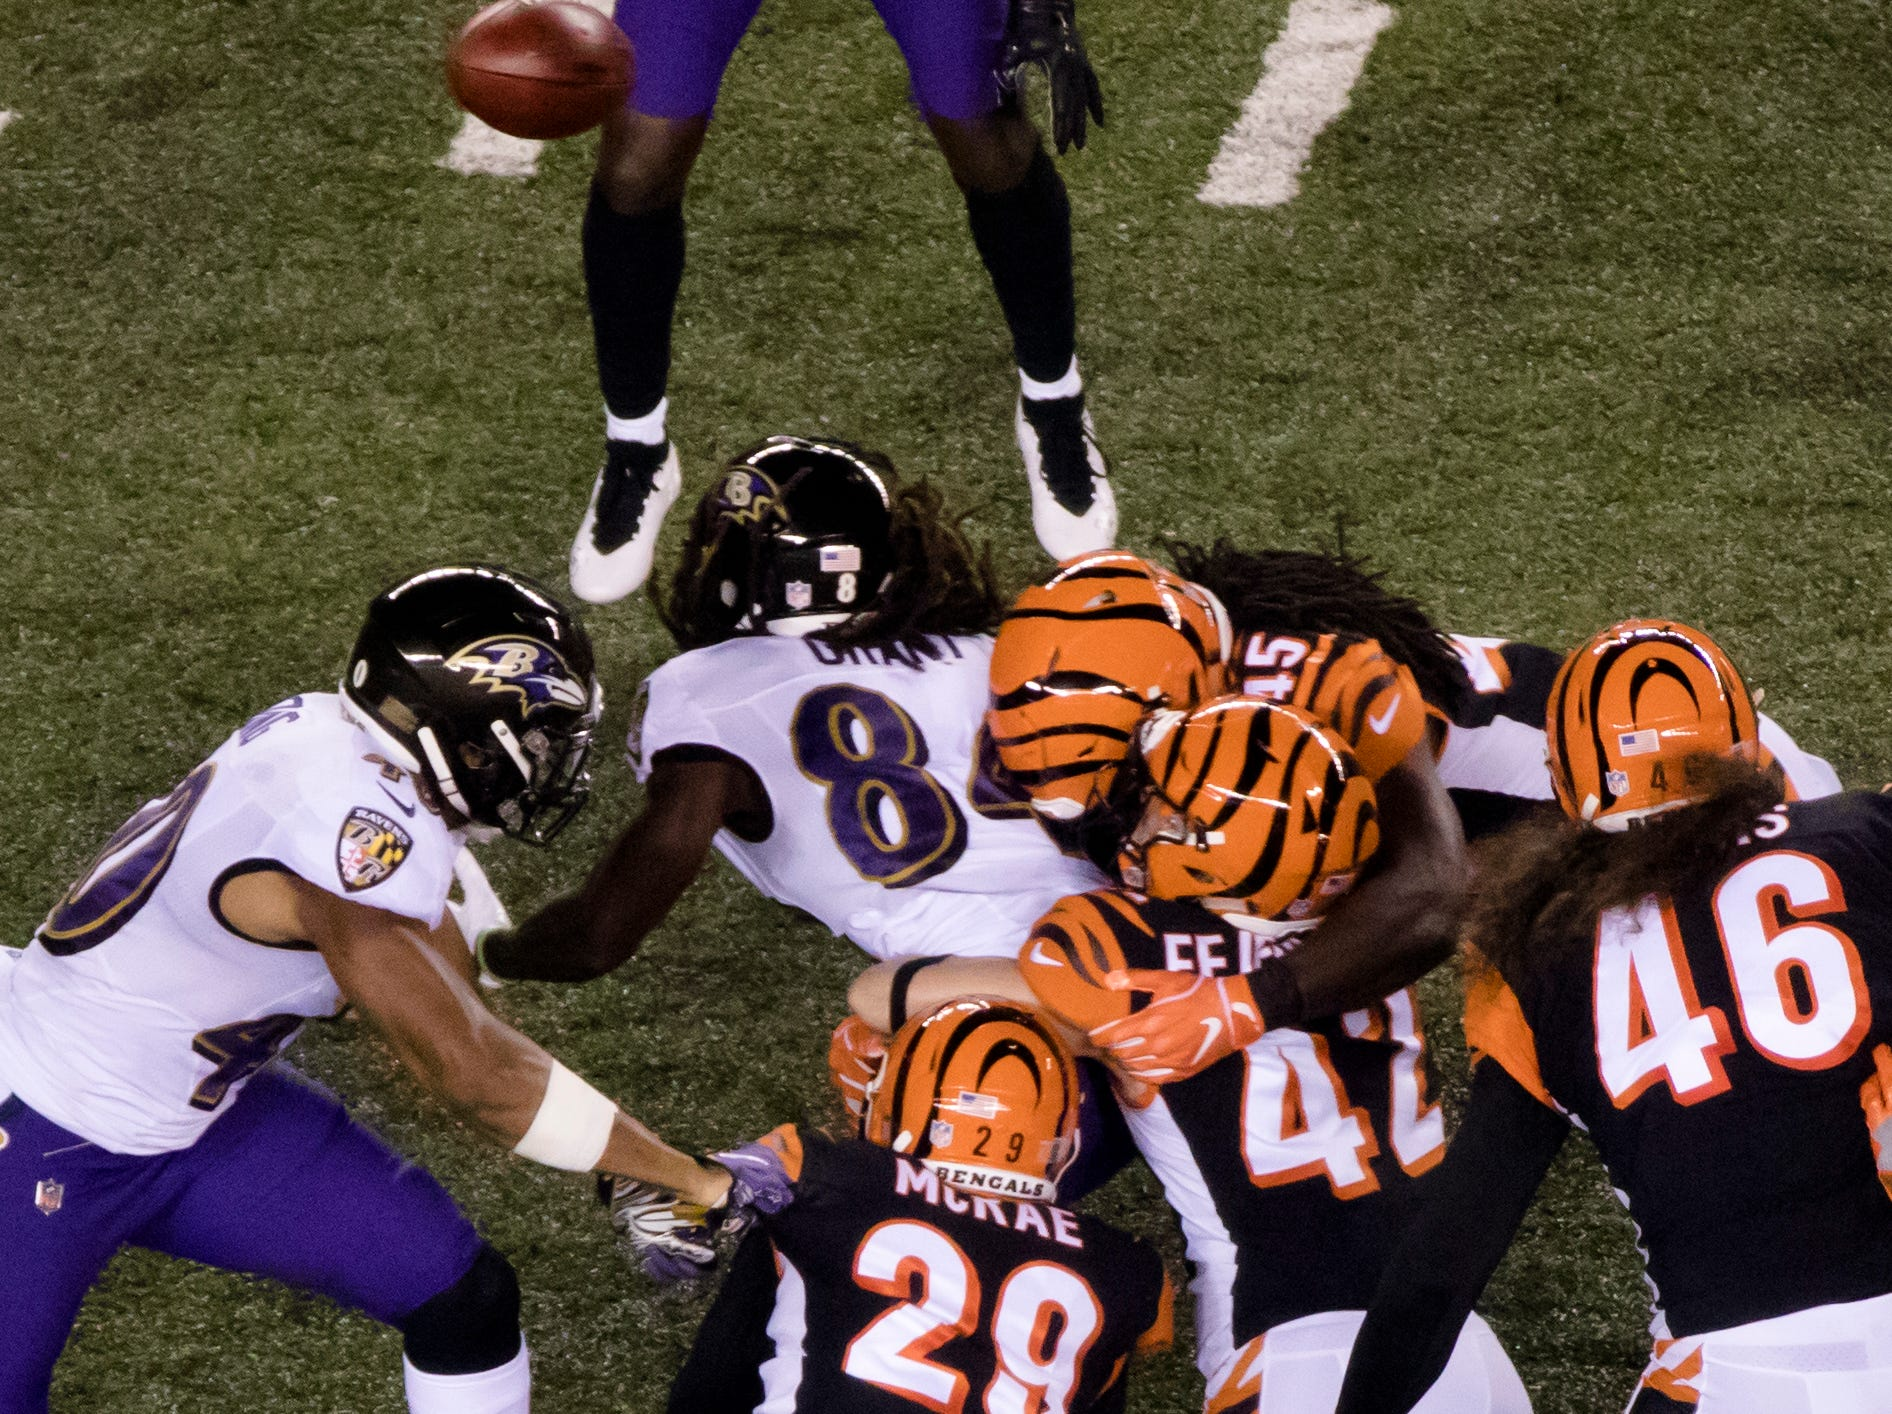 Cincinnati Bengals running back Joe Mixon (28) and Cincinnati Bengals safety Clayton Fejedelem (42) force Baltimore Ravens wide receiver Janarion Grant (84) to fumble during the Week 2 NFL game between the Cincinnati Bengals and the Baltimore Ravens, Thursday, Sept. 13, 2018, at Paul Brown Stadium in Cincinnati.